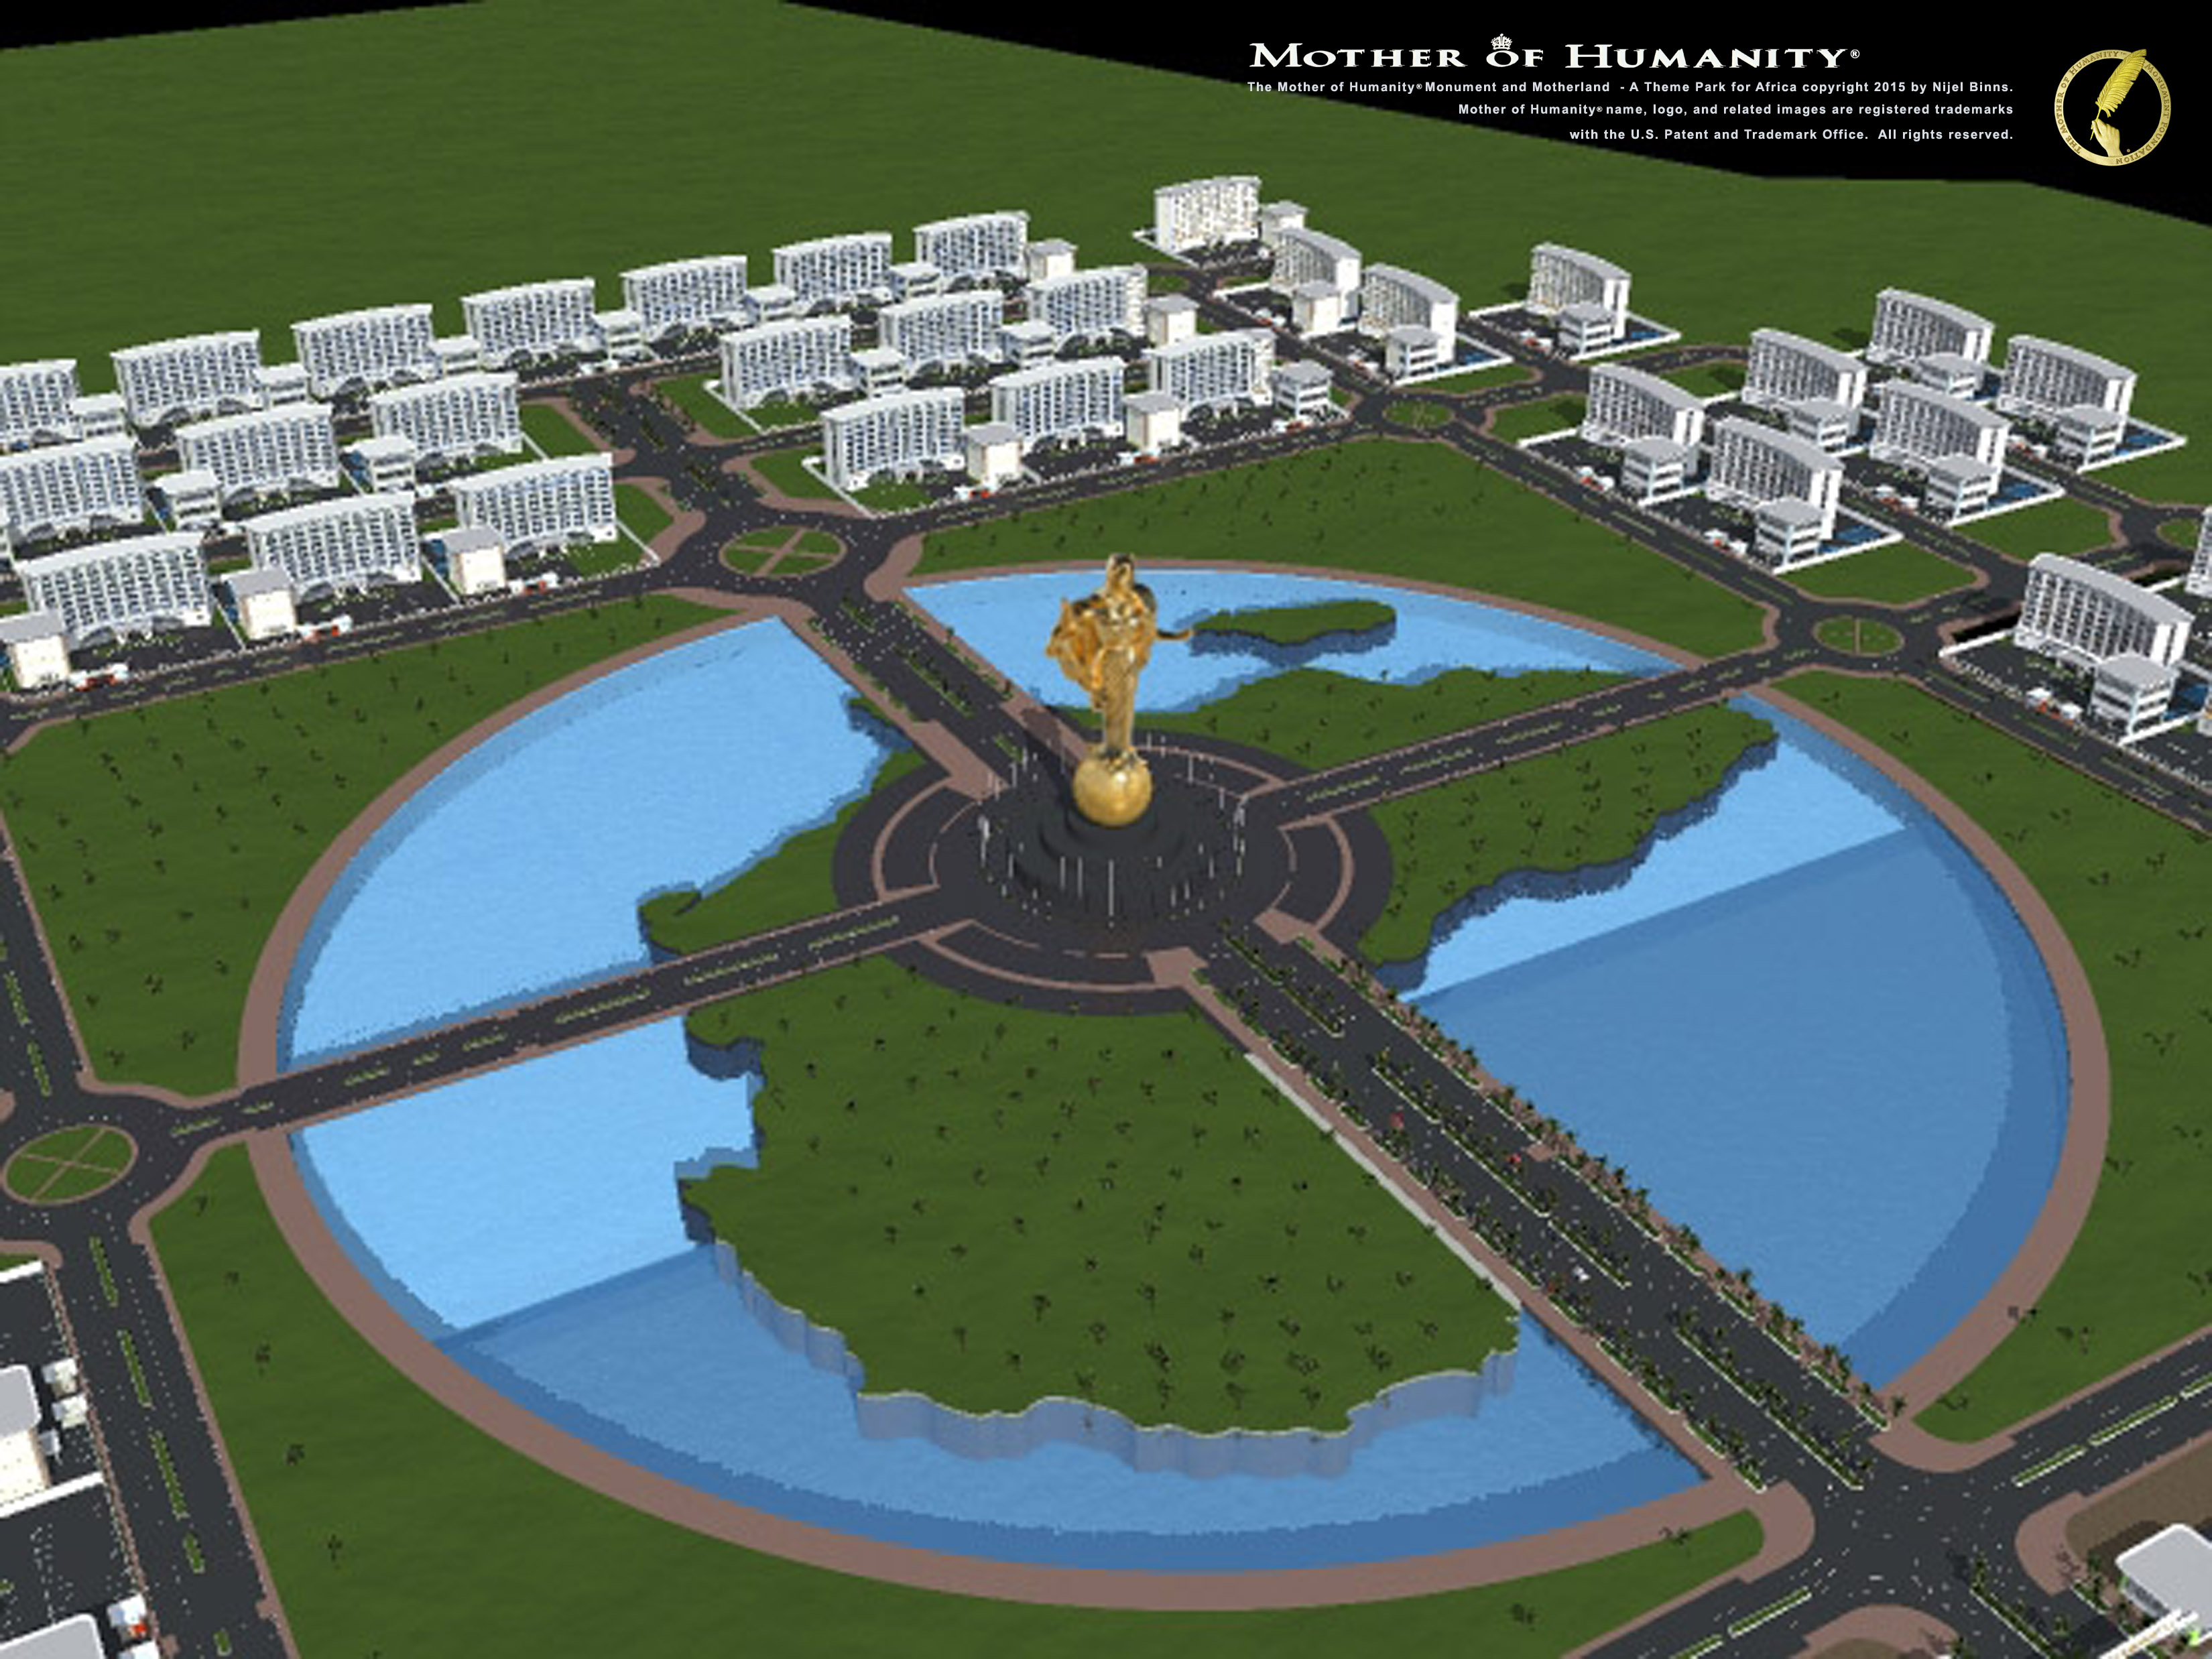 Project renderings for the Mother of Humanity® Monument at the MotherLand™ themed park.